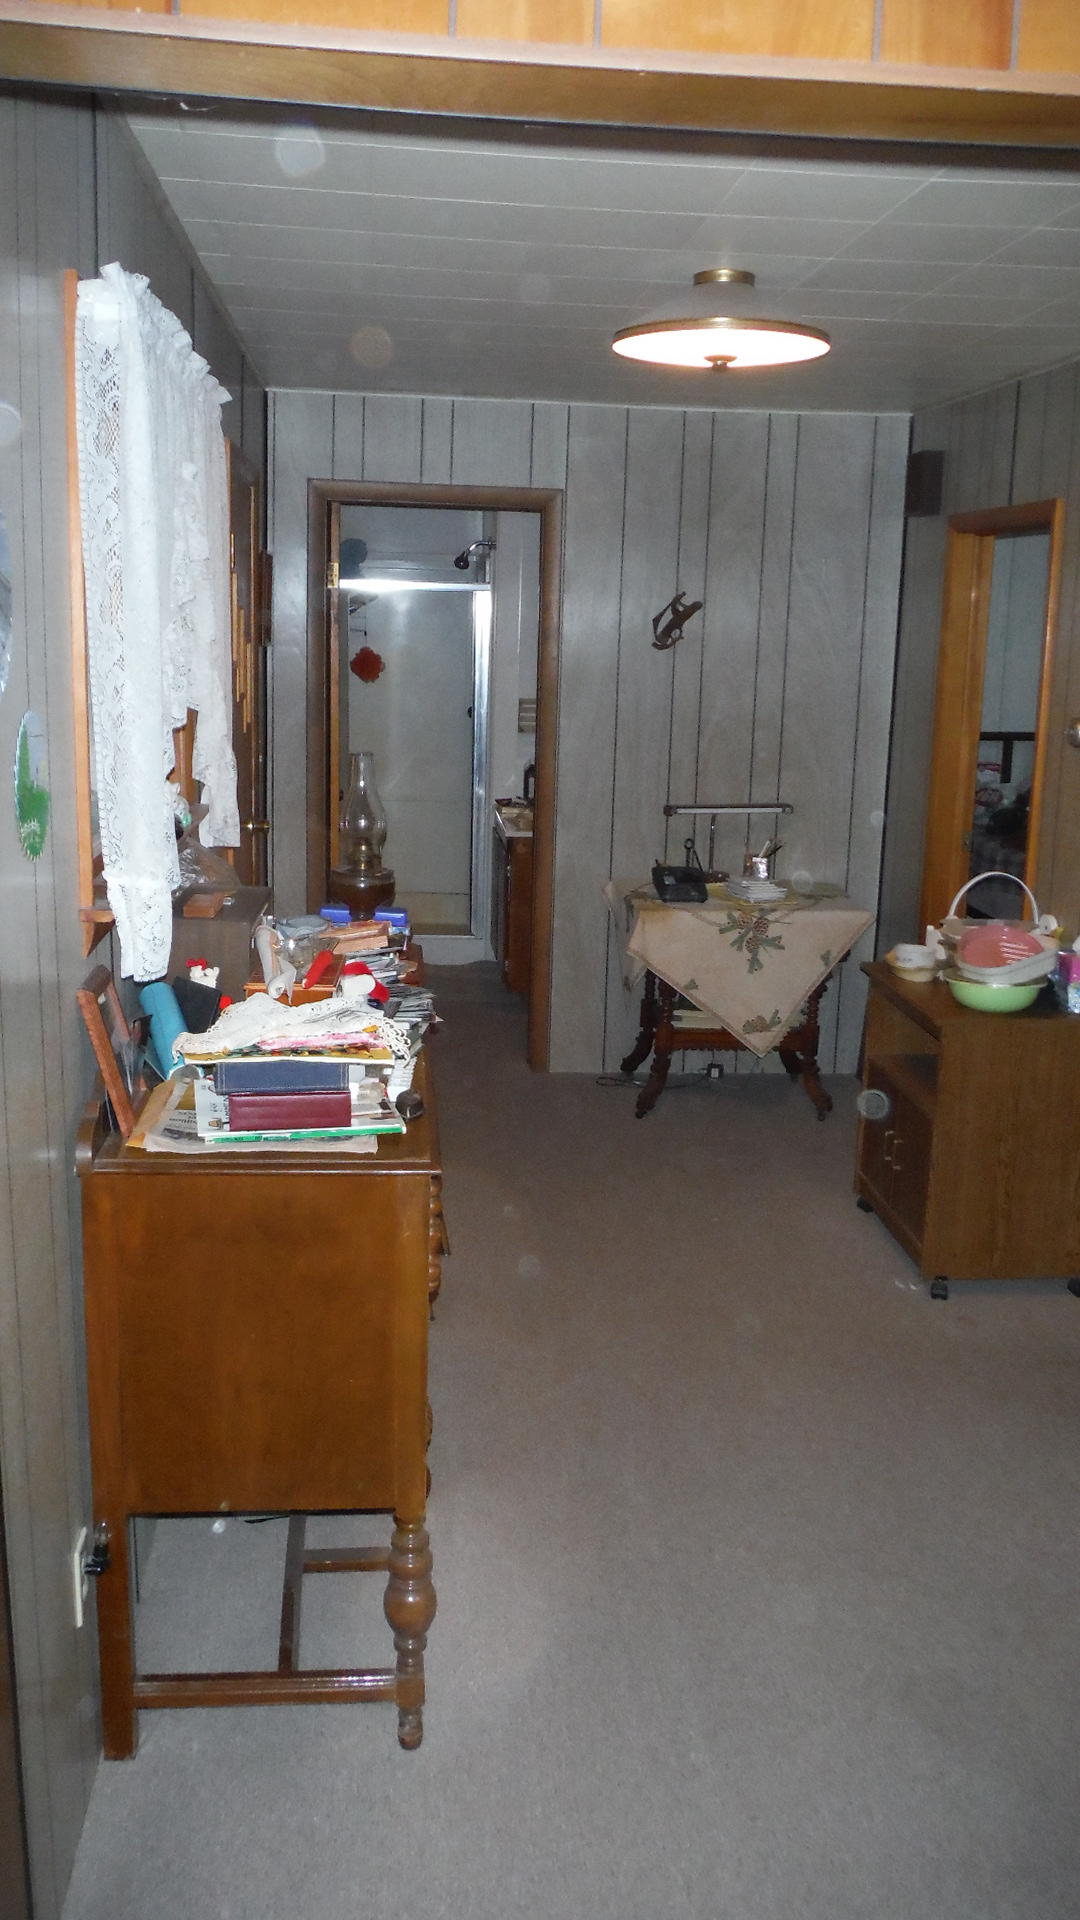 zelinski real estate personal property auction thursday sykora st louis mi 48867 single story 2 bedroom 1 full bath home on full block basement 24 x24 detached 2 car garage approx